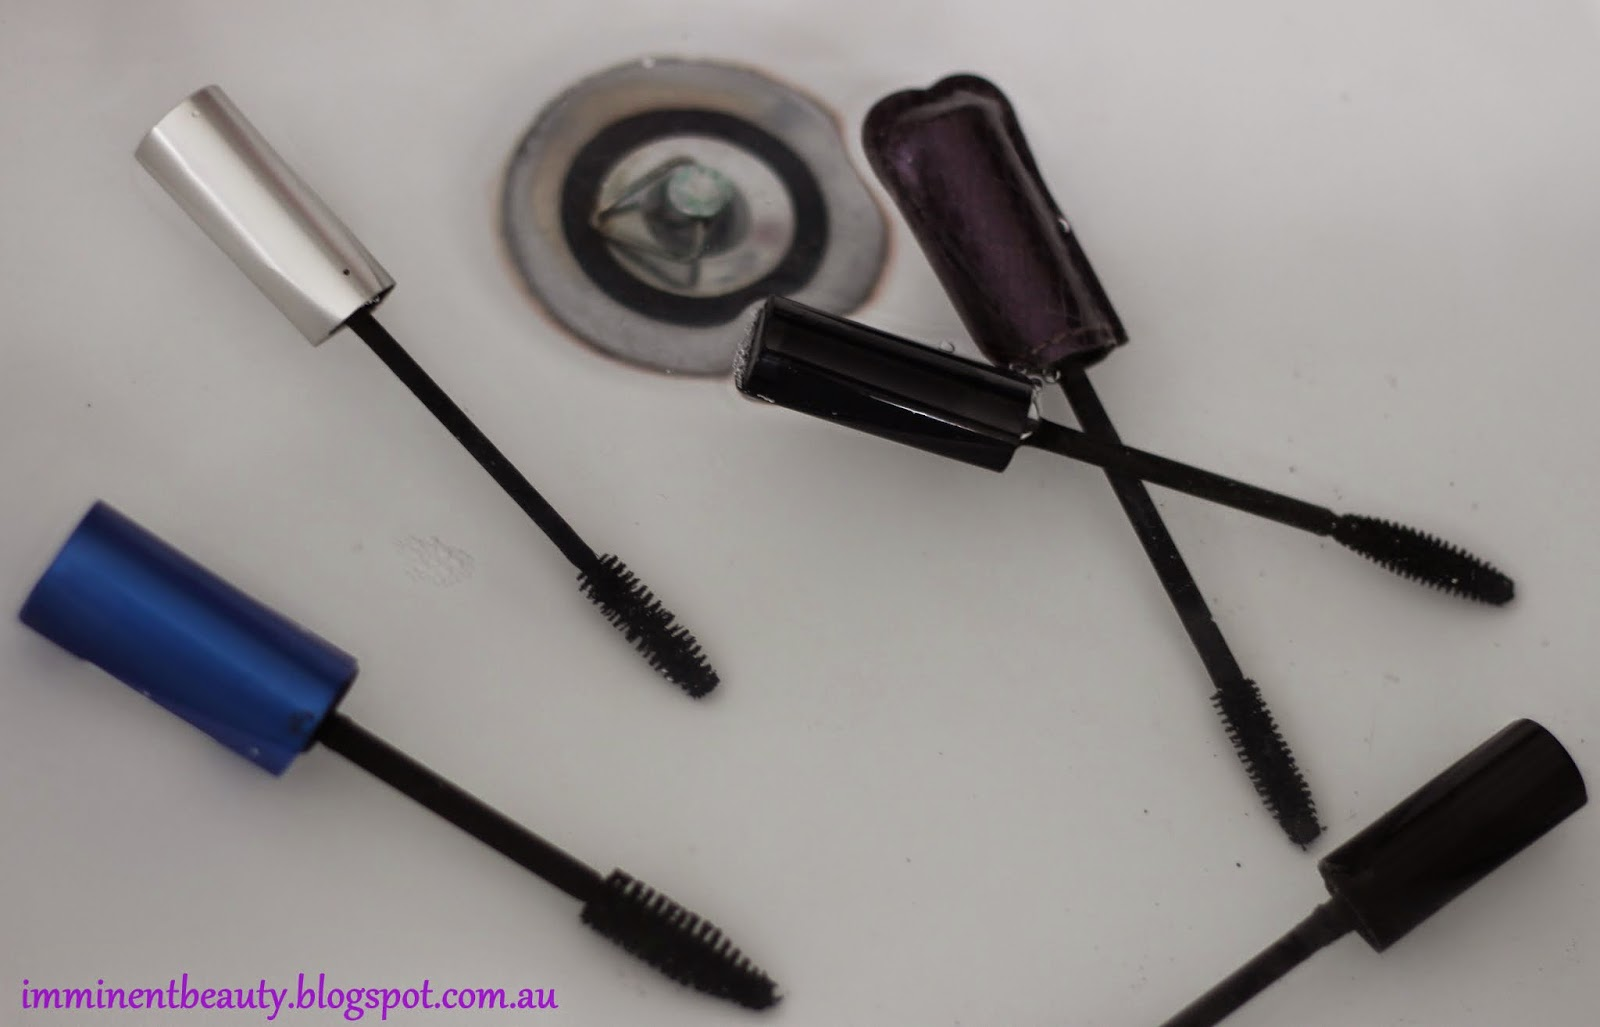 mascara wands, mascara, lashes, cleaning brushes, makeup